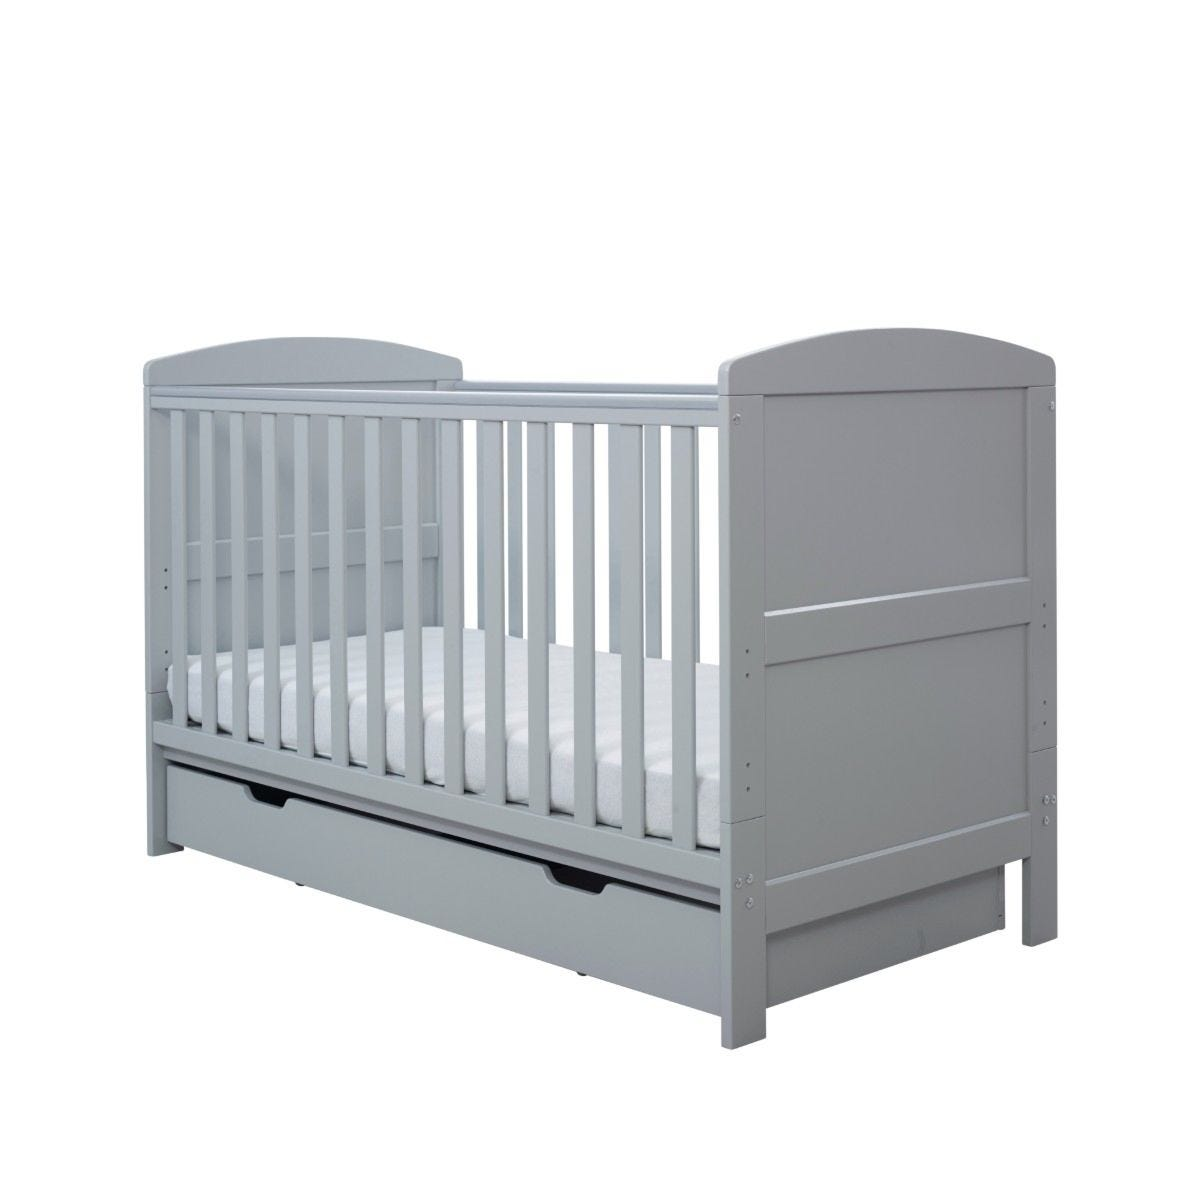 Ickle Bubba Coleby Classic Cot Bed Under Drawer and Sprung Mattress Grey